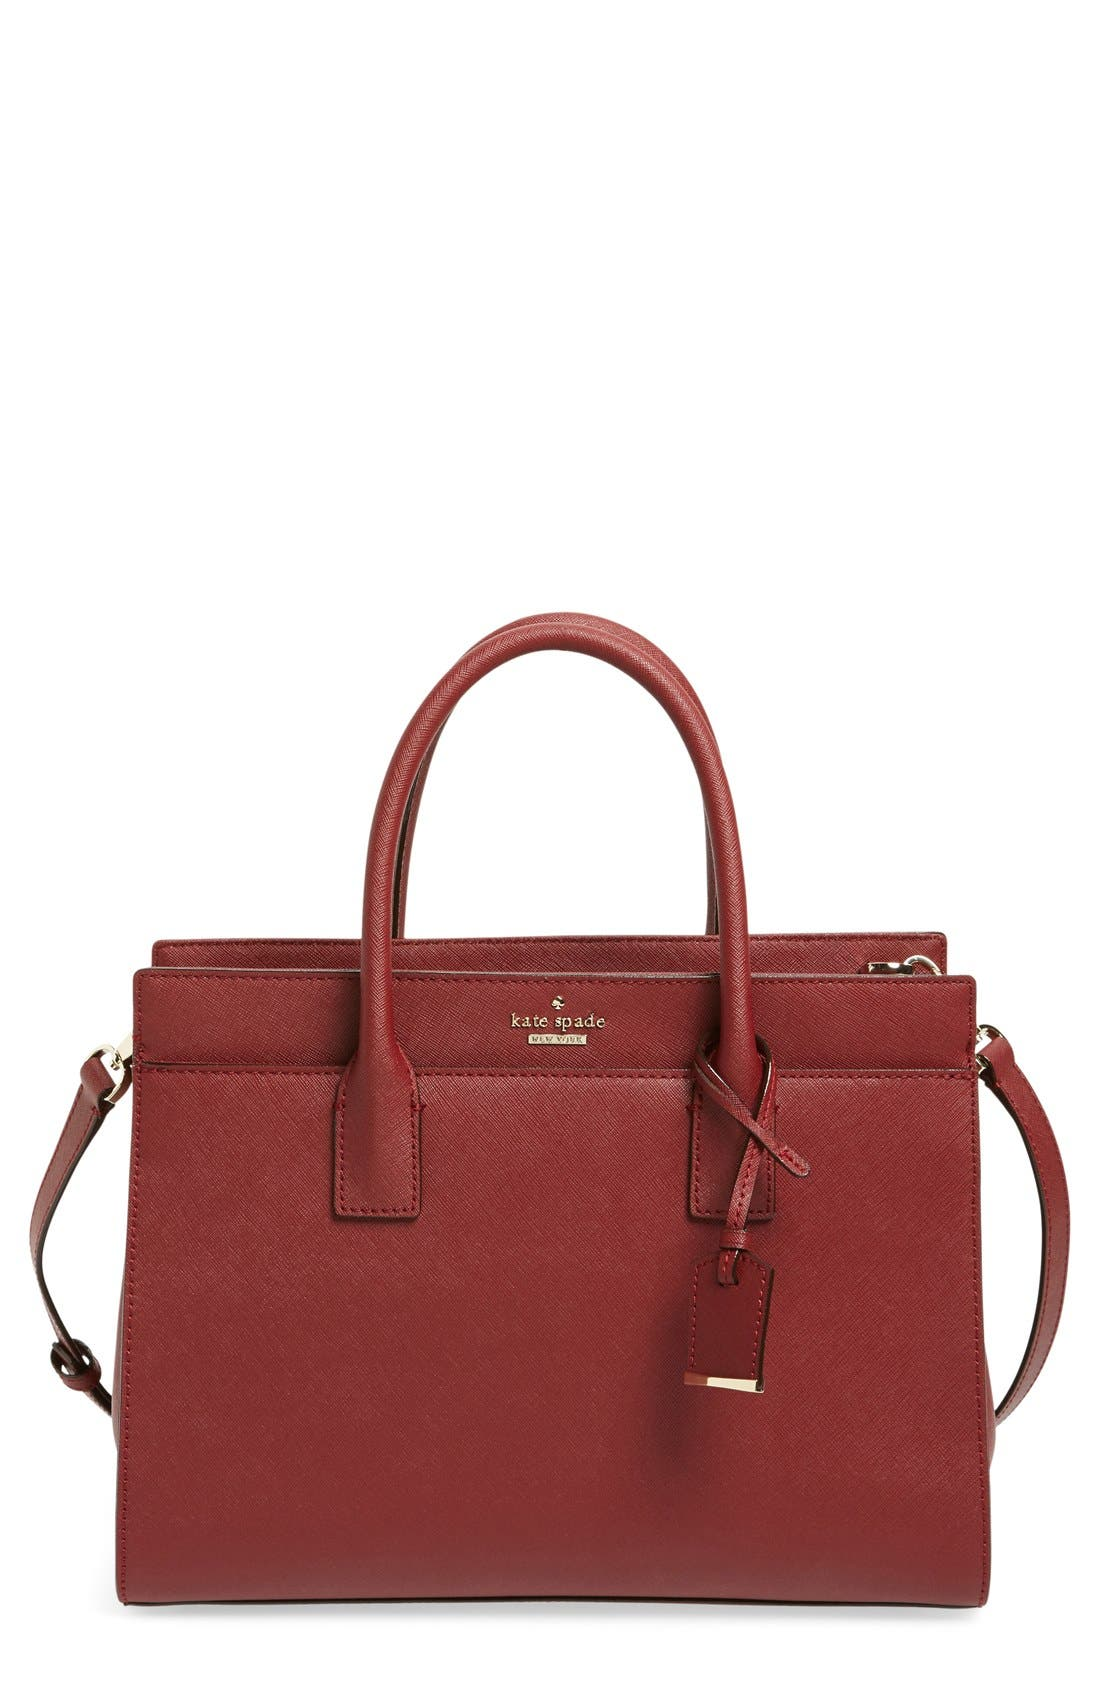 cameron street - candace leather satchel,                             Main thumbnail 19, color,